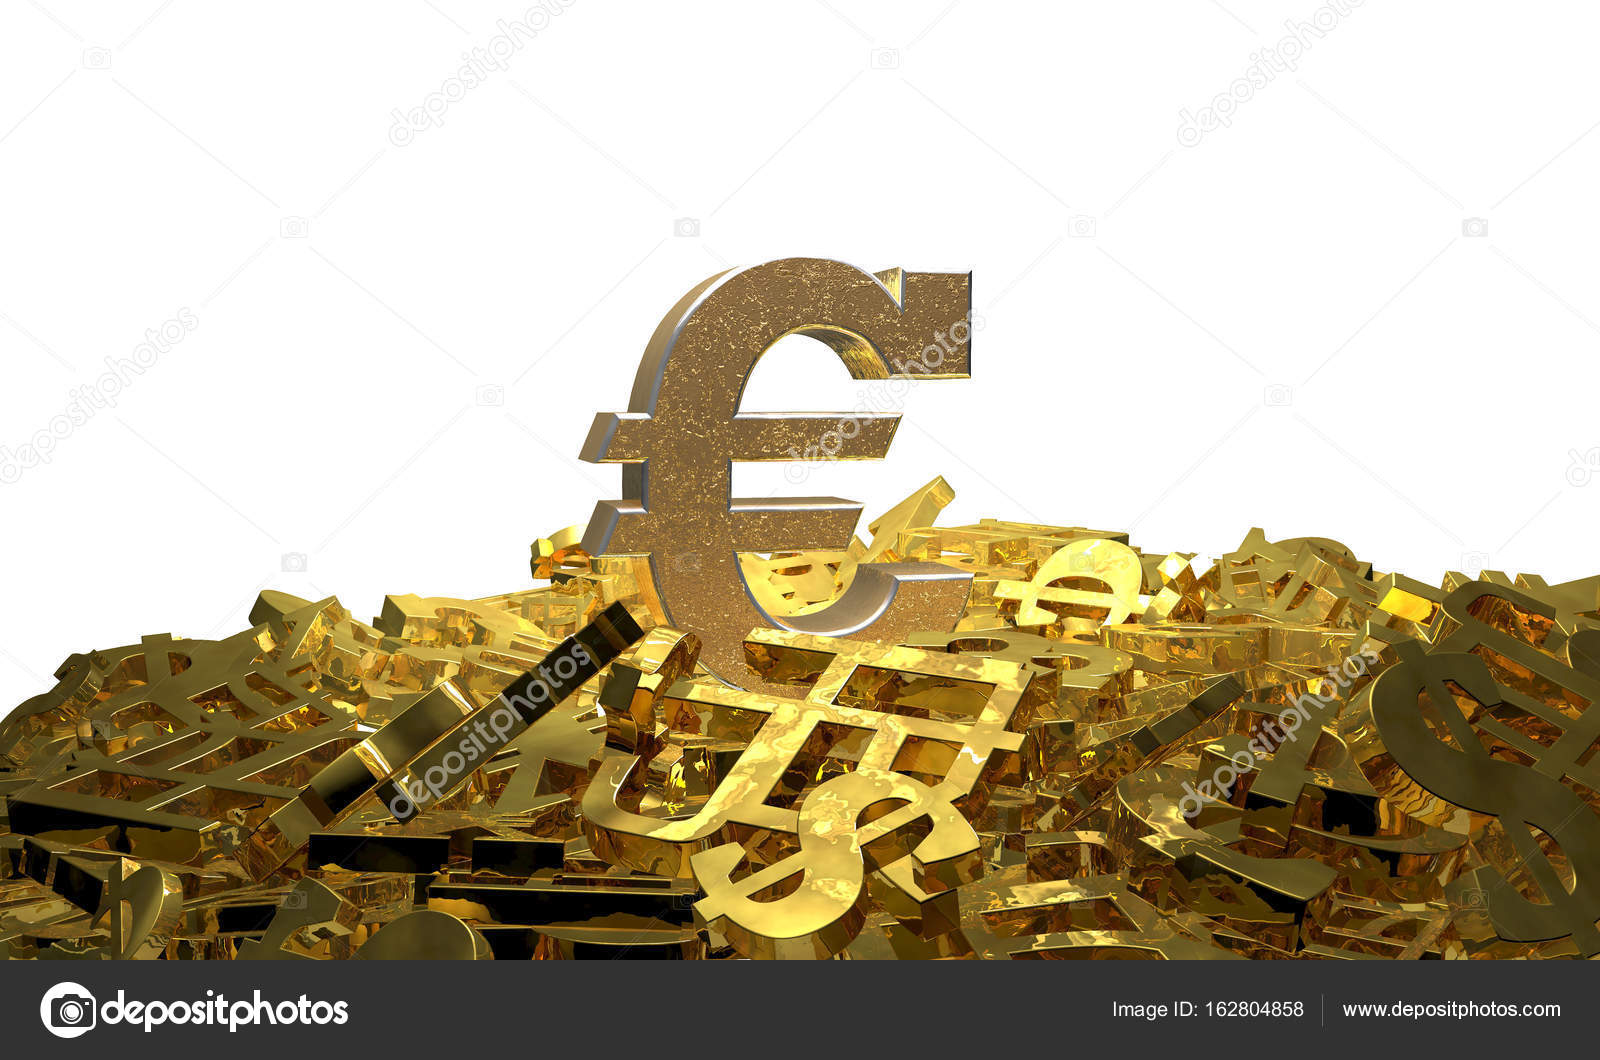 Euro Sign On A Pile Of Other Currency Symbols 3d Illustration